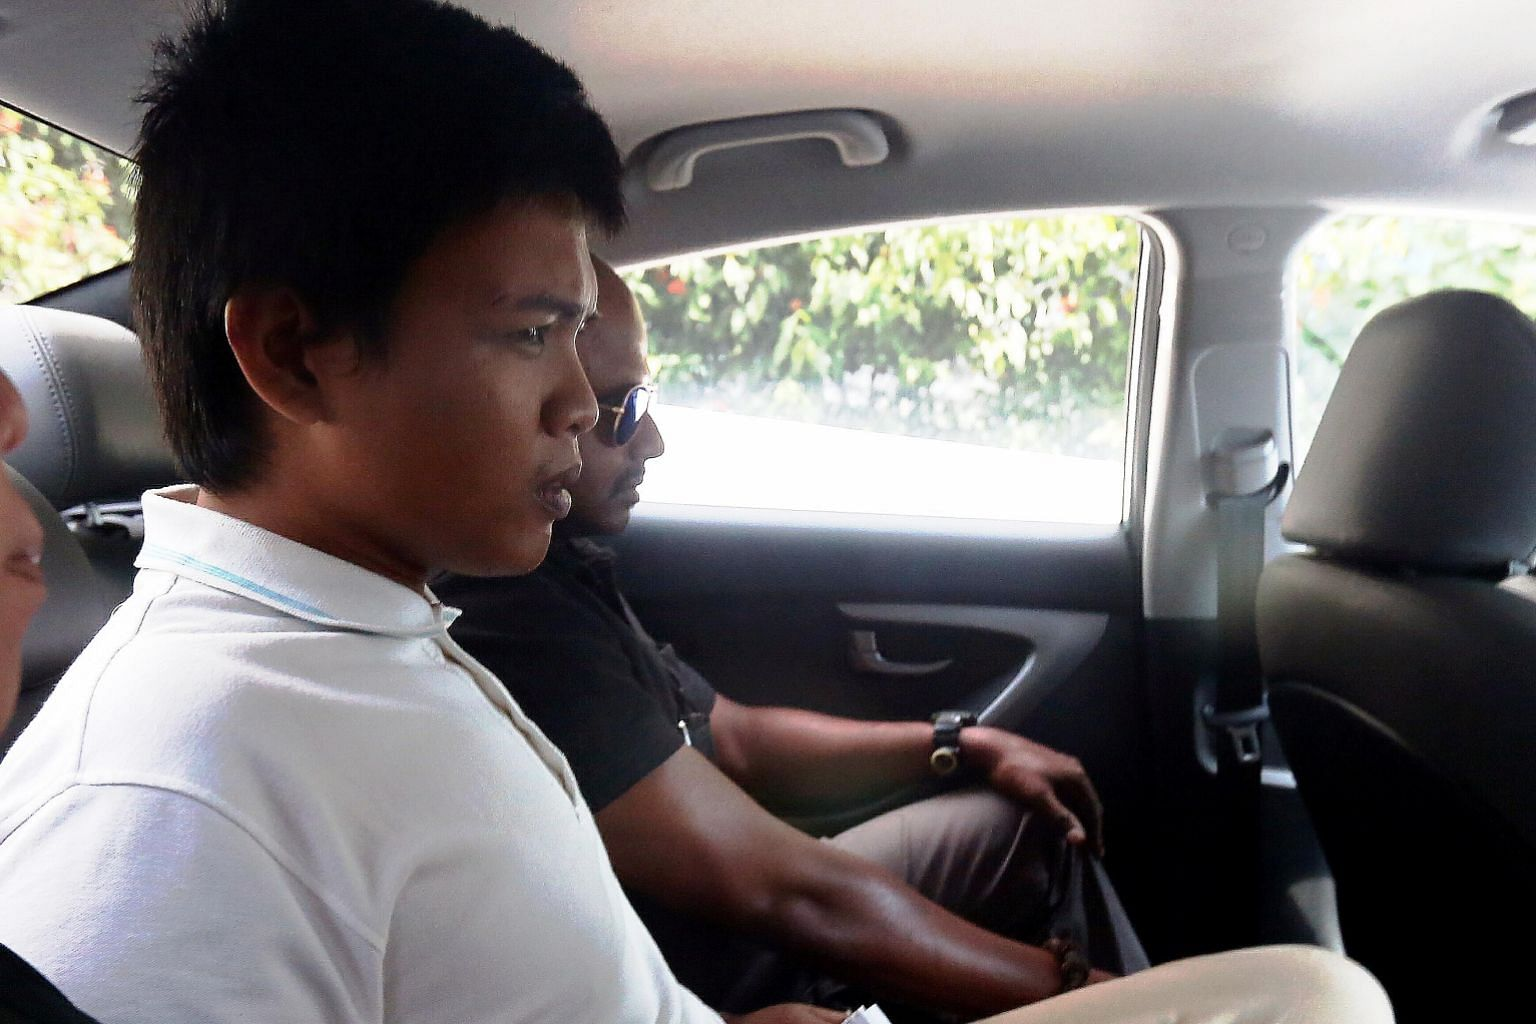 Muhammad Iskandar was charged yesterday with hitting a policeman with a T-baton and a metal pole.